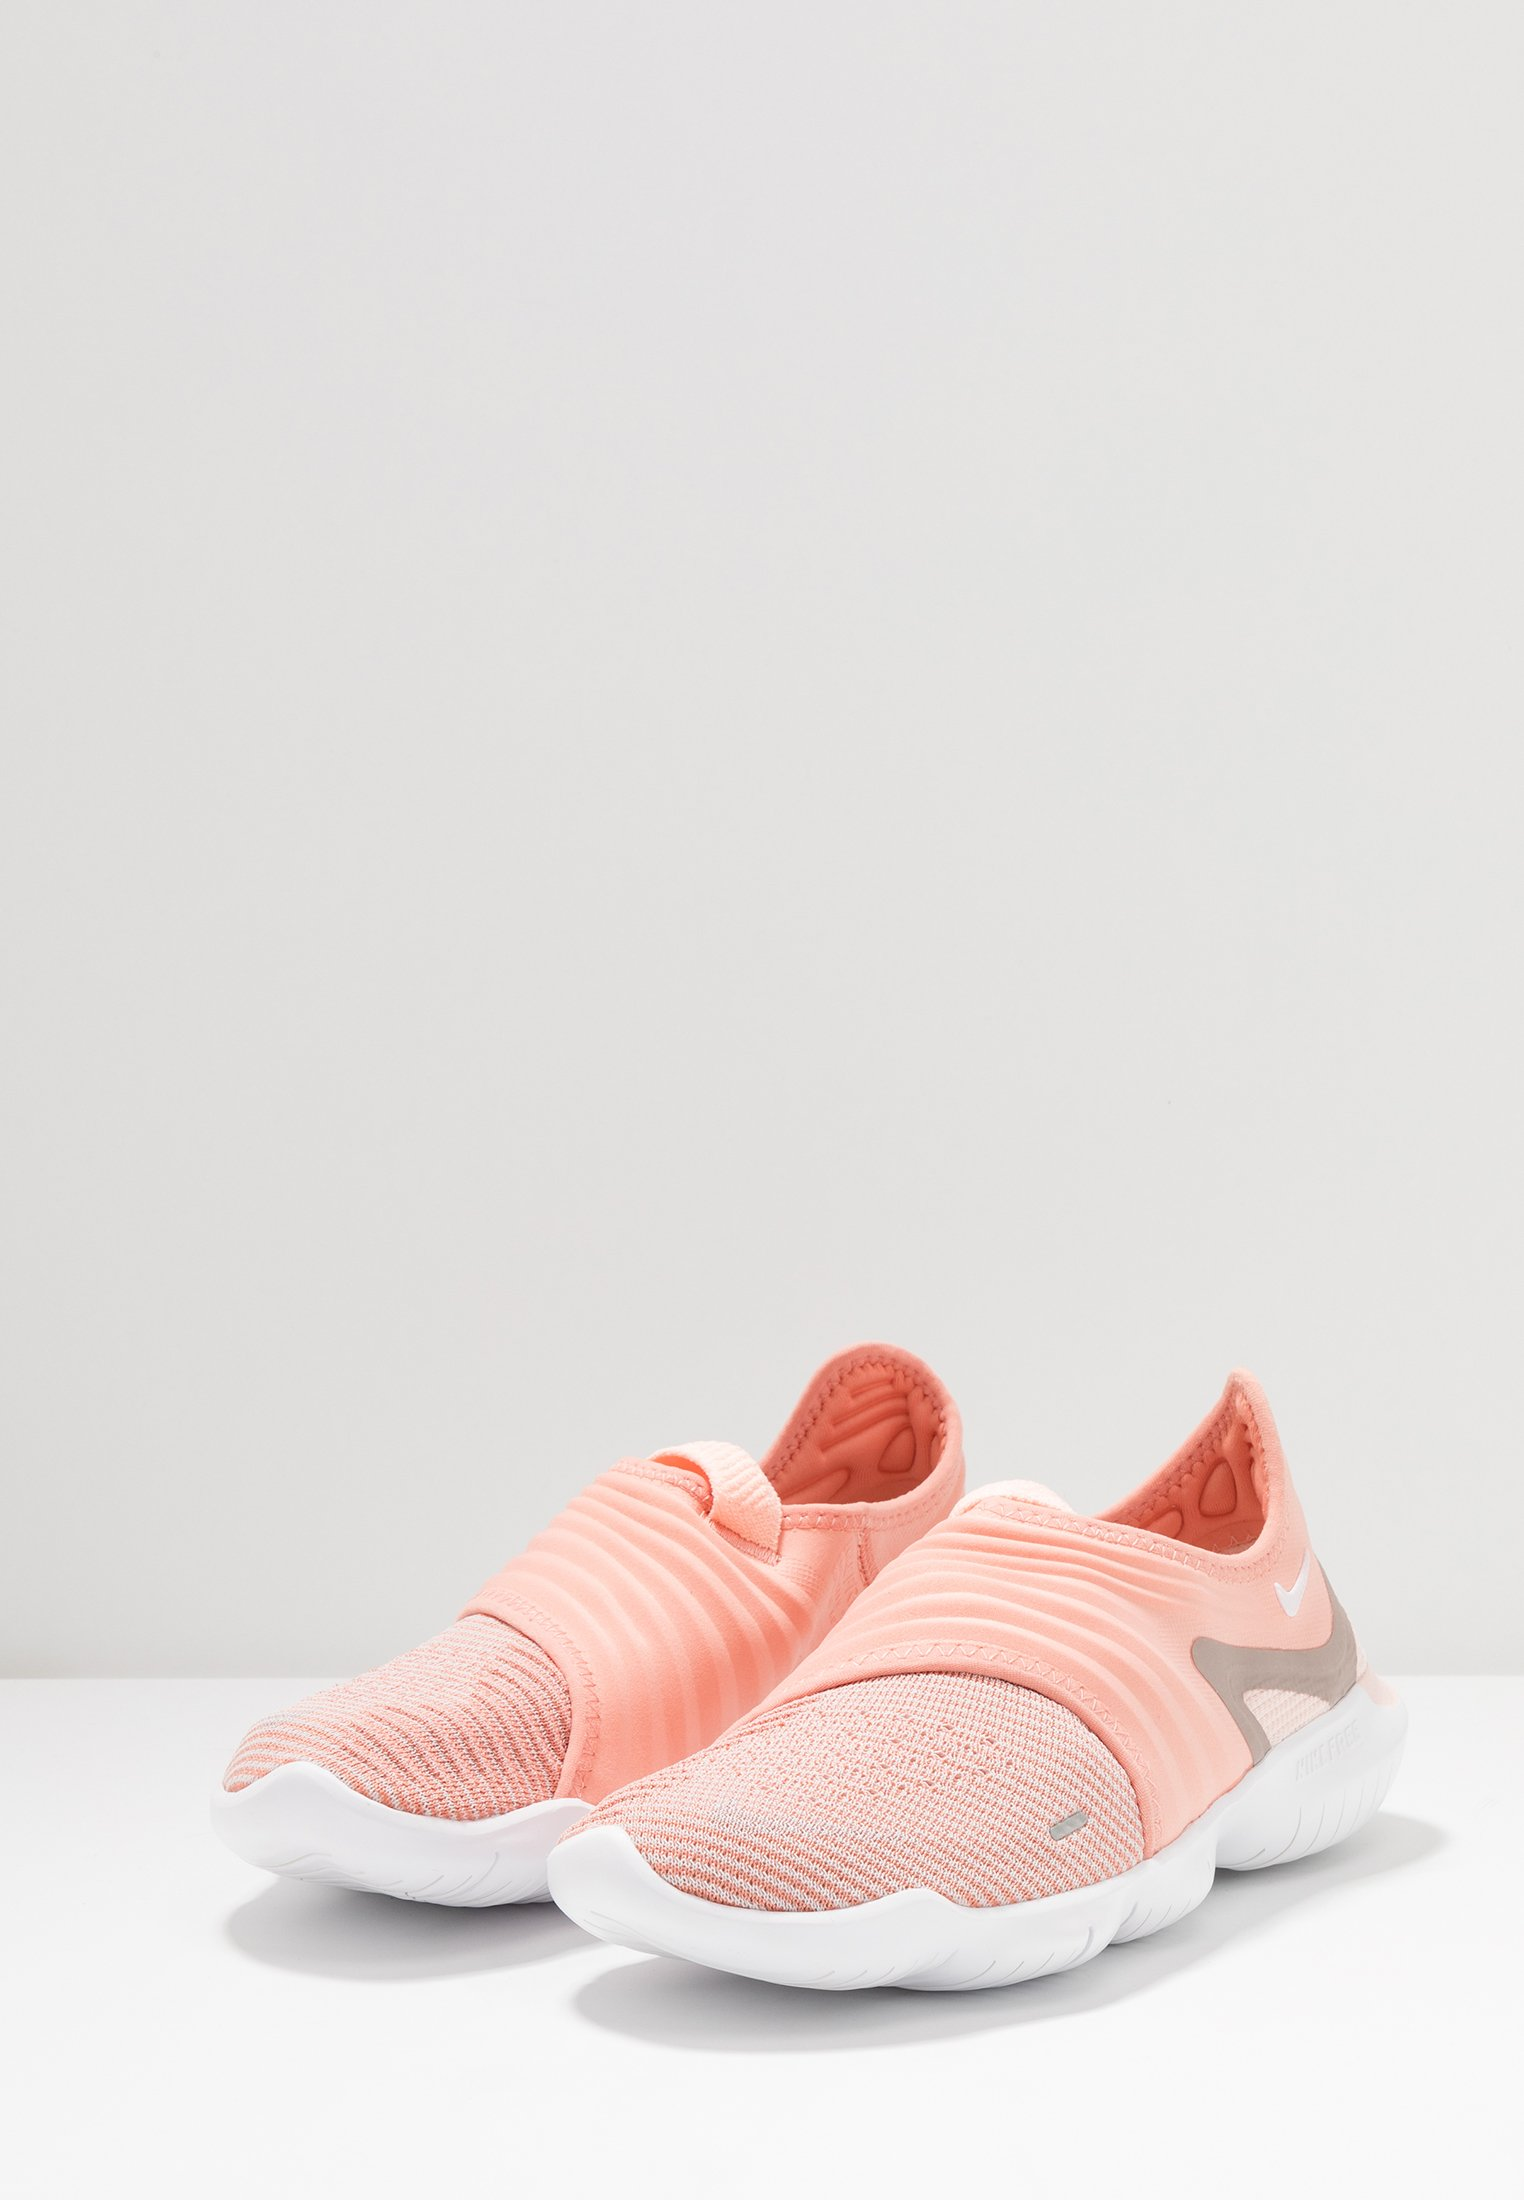 Quartz Flyknit Pink De Free Nike 0Chaussures Neutres 3 Course white echo Performance Rn shCxBtQord